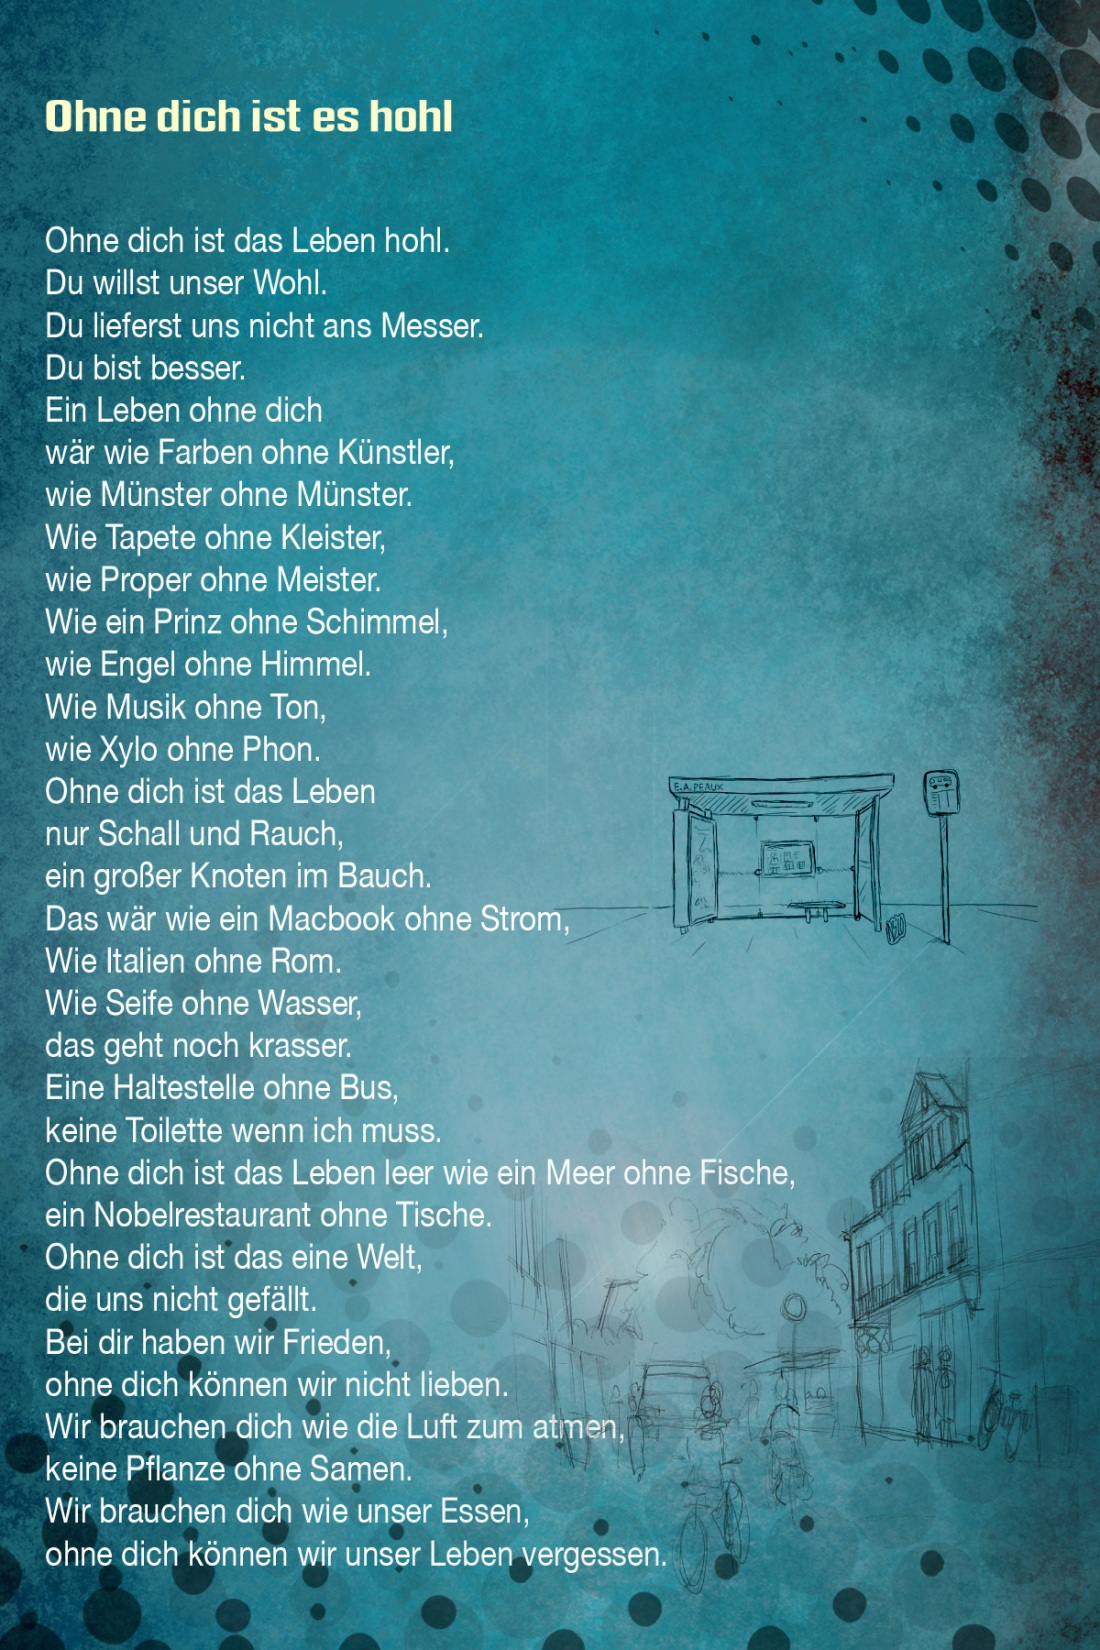 Ohne dich ist alles hohl